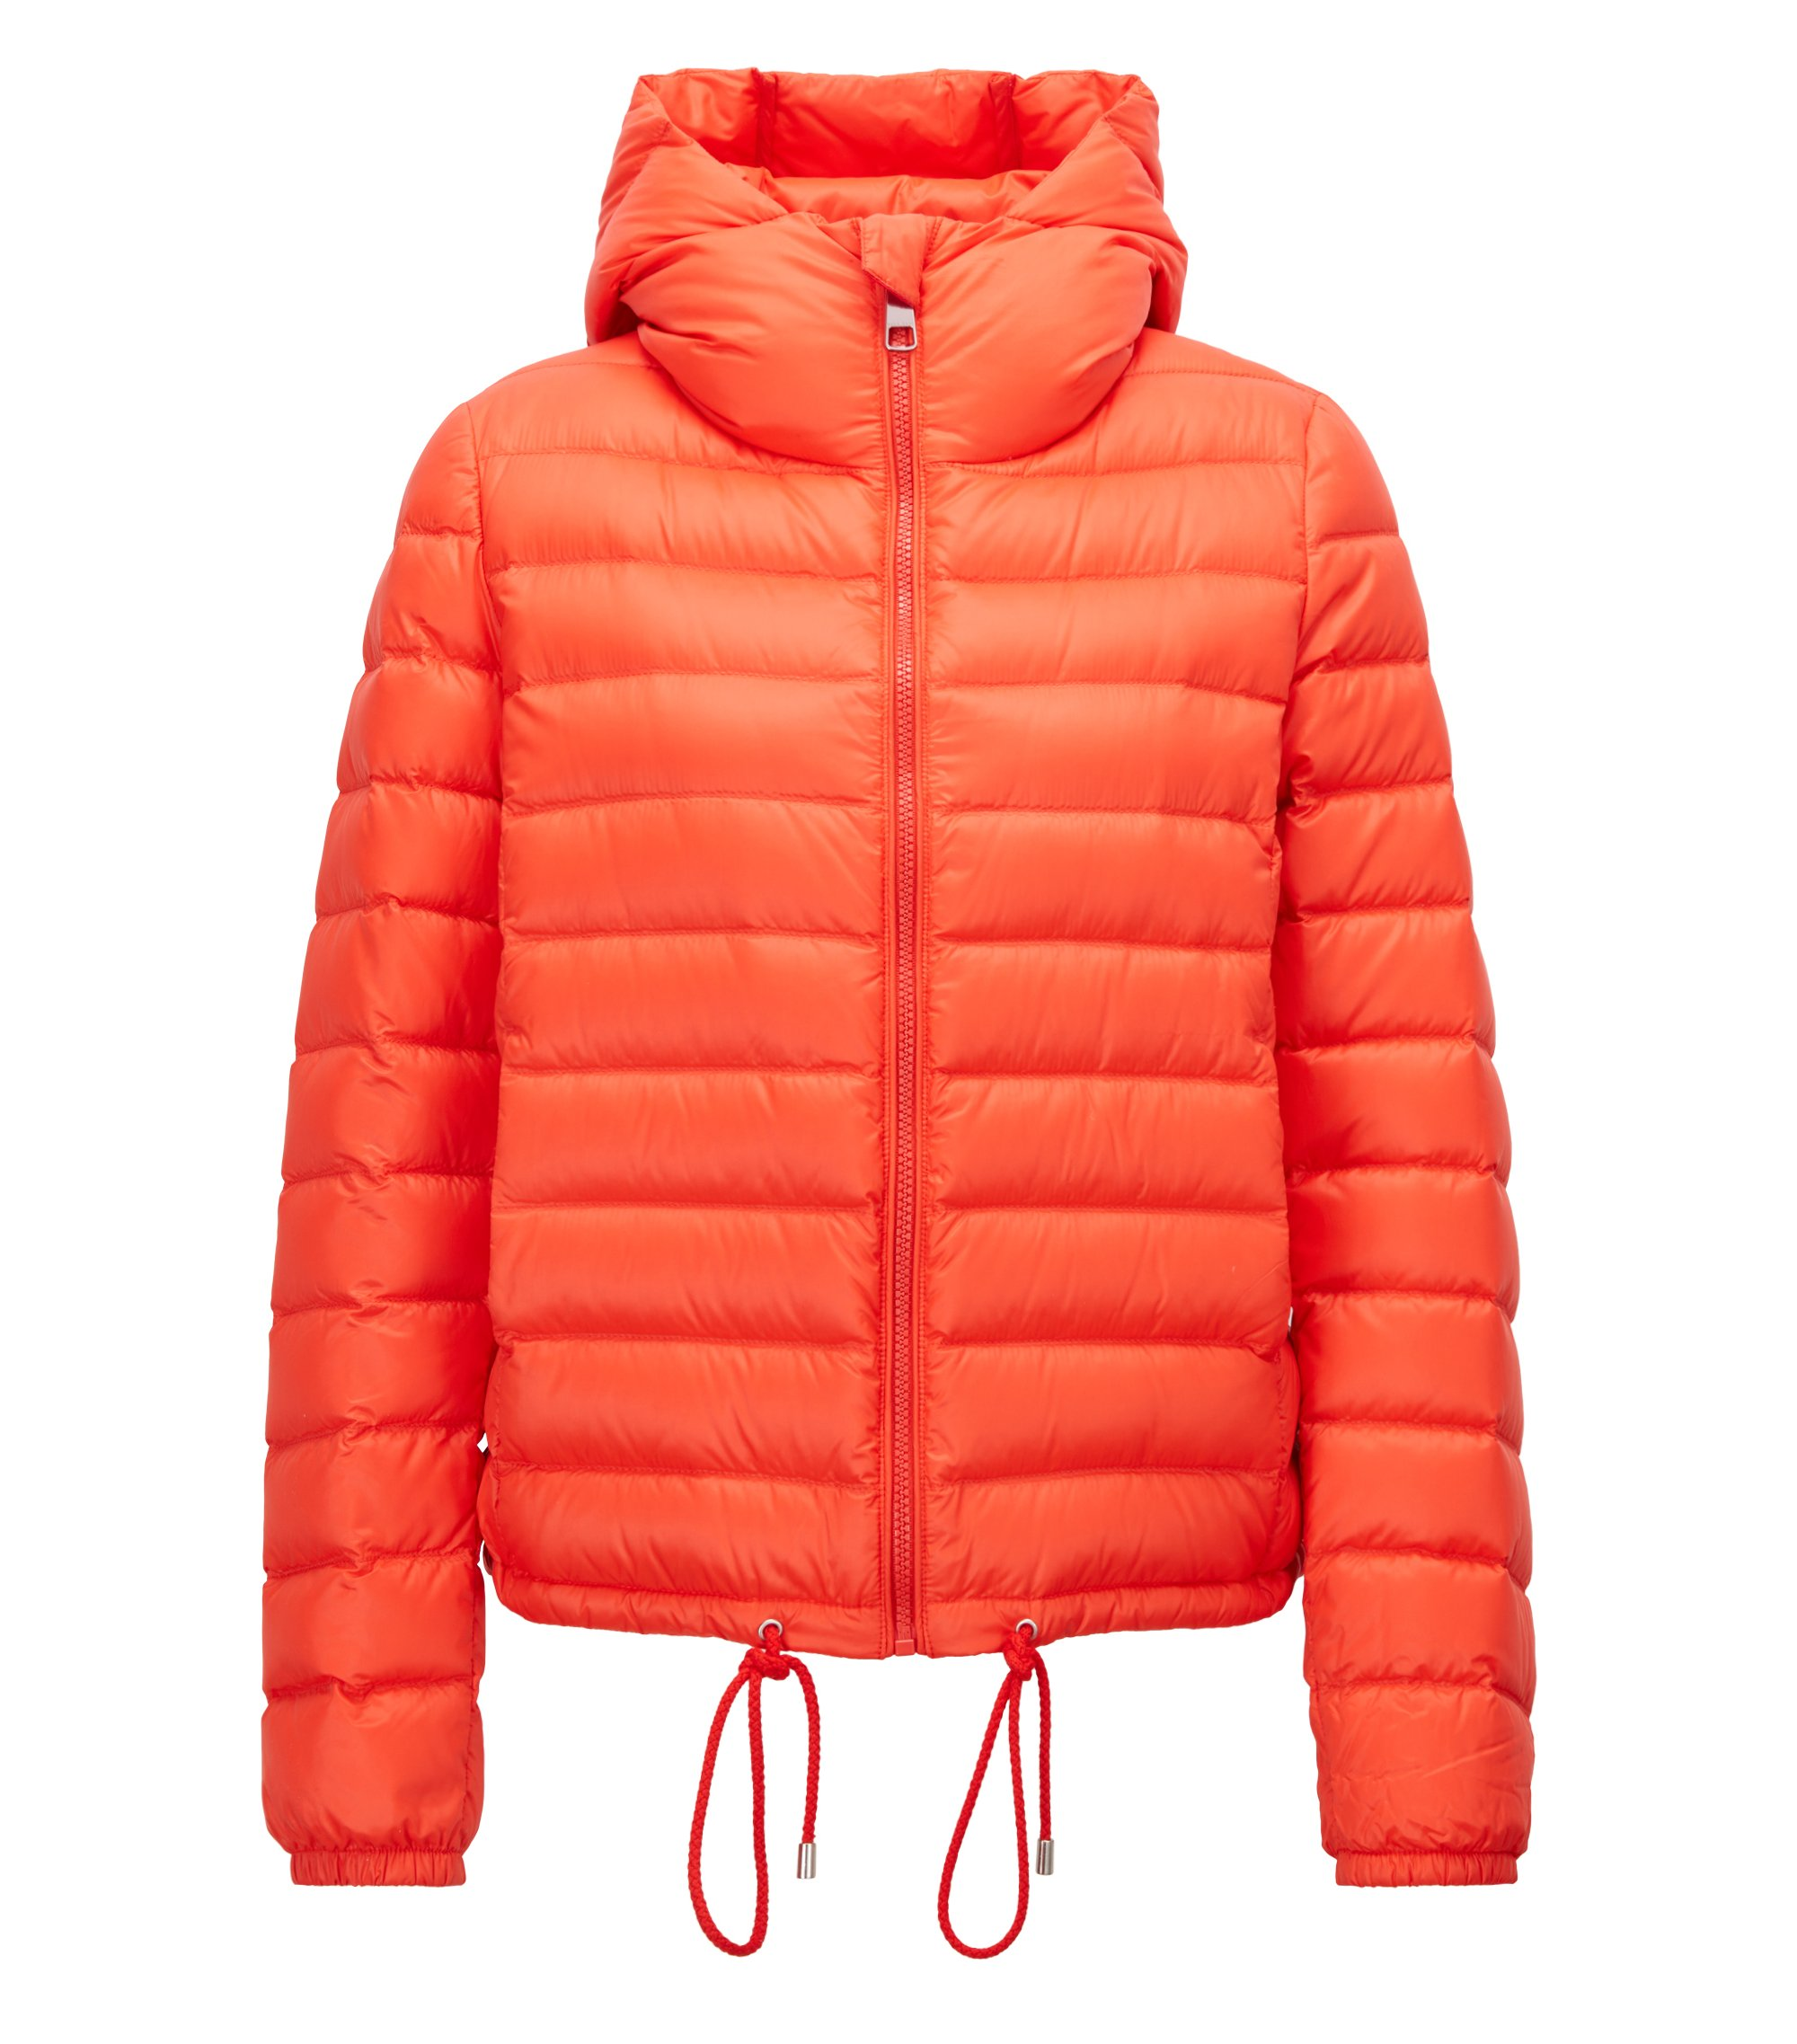 Lightweight down-filled jacket with water-repellent outer, Red